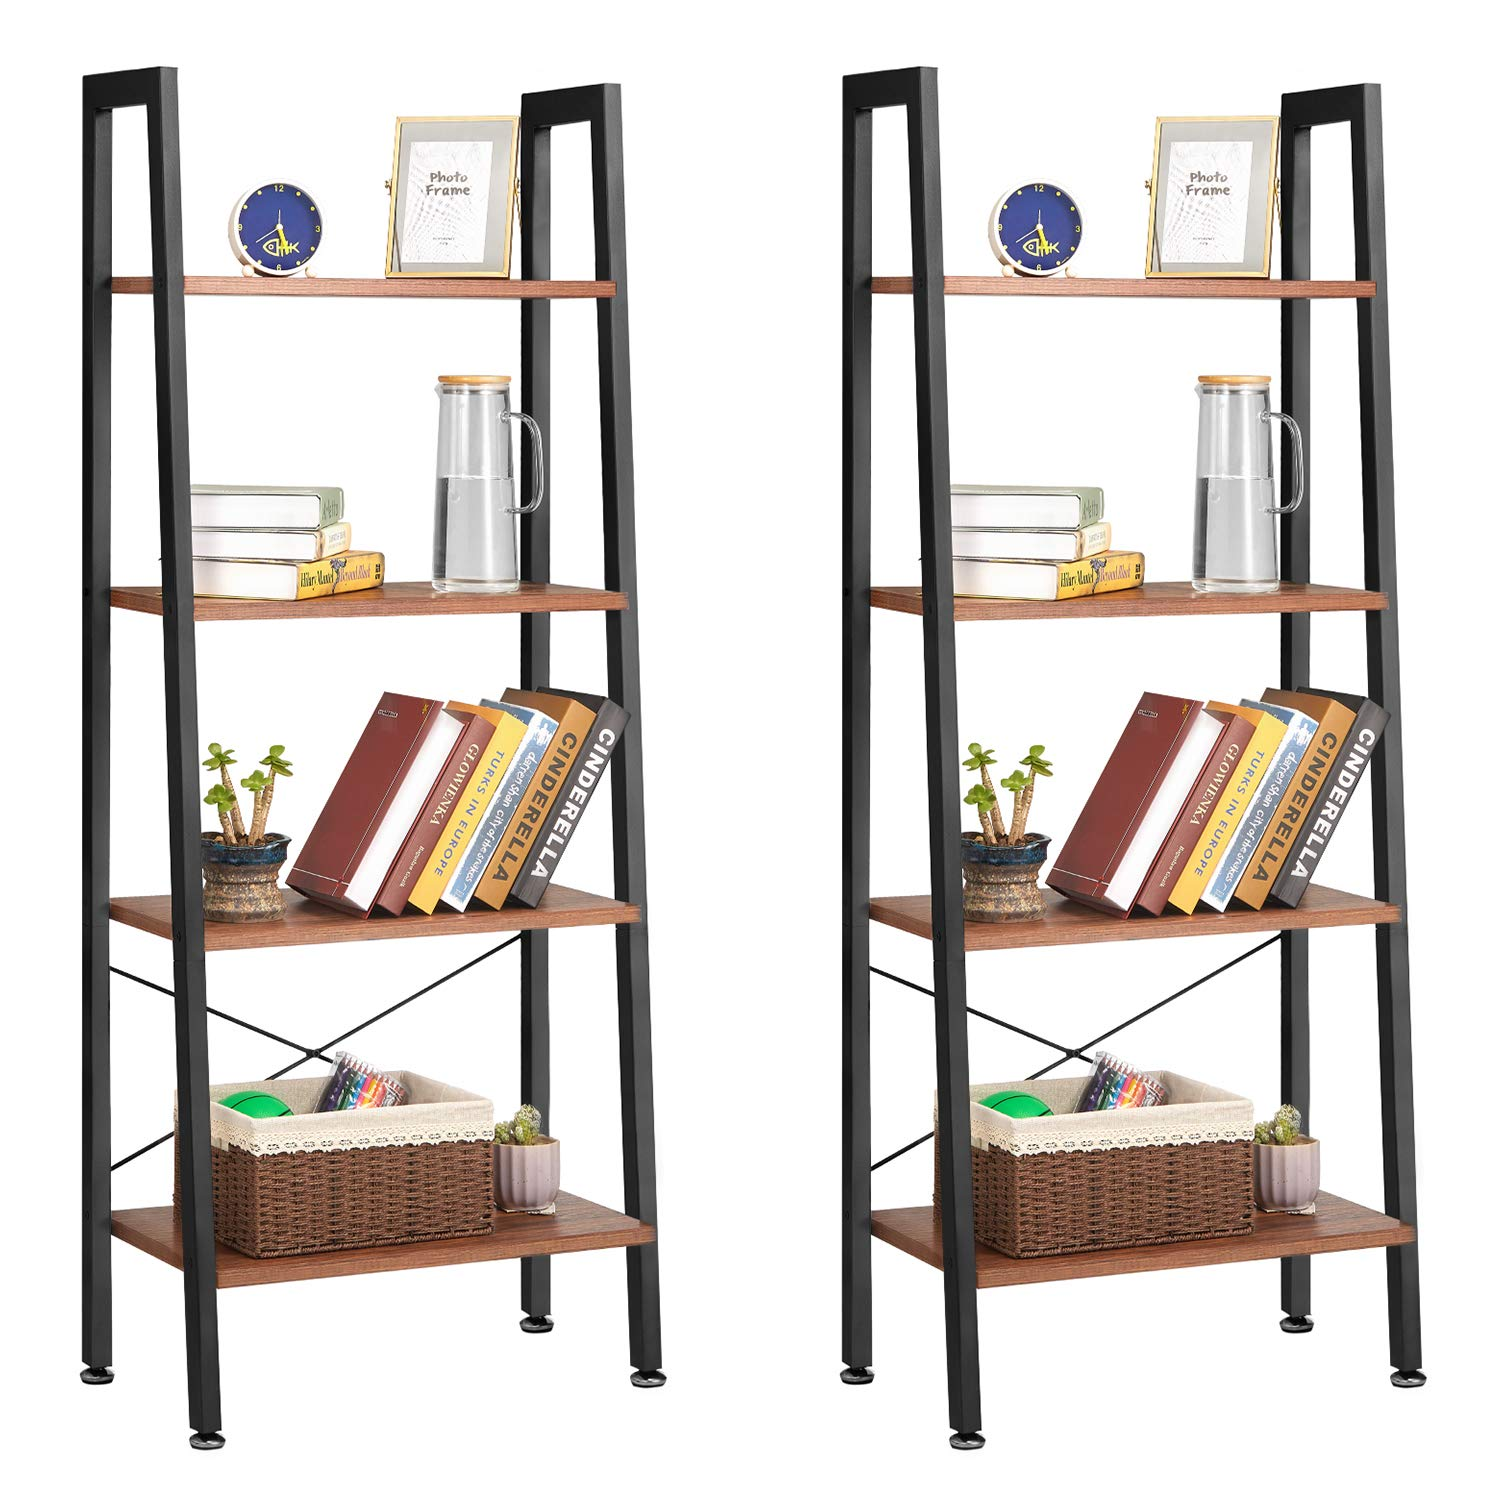 Industrial Ladder Shelf Set of 2, Kealive 4 Tiers Bookshelf Wood Storage Rack Shelf with Metal Frame, Plant Flower Stand with Anti-toppling Foot for Living Room, 23.6L 13.8W 59H, Rustic